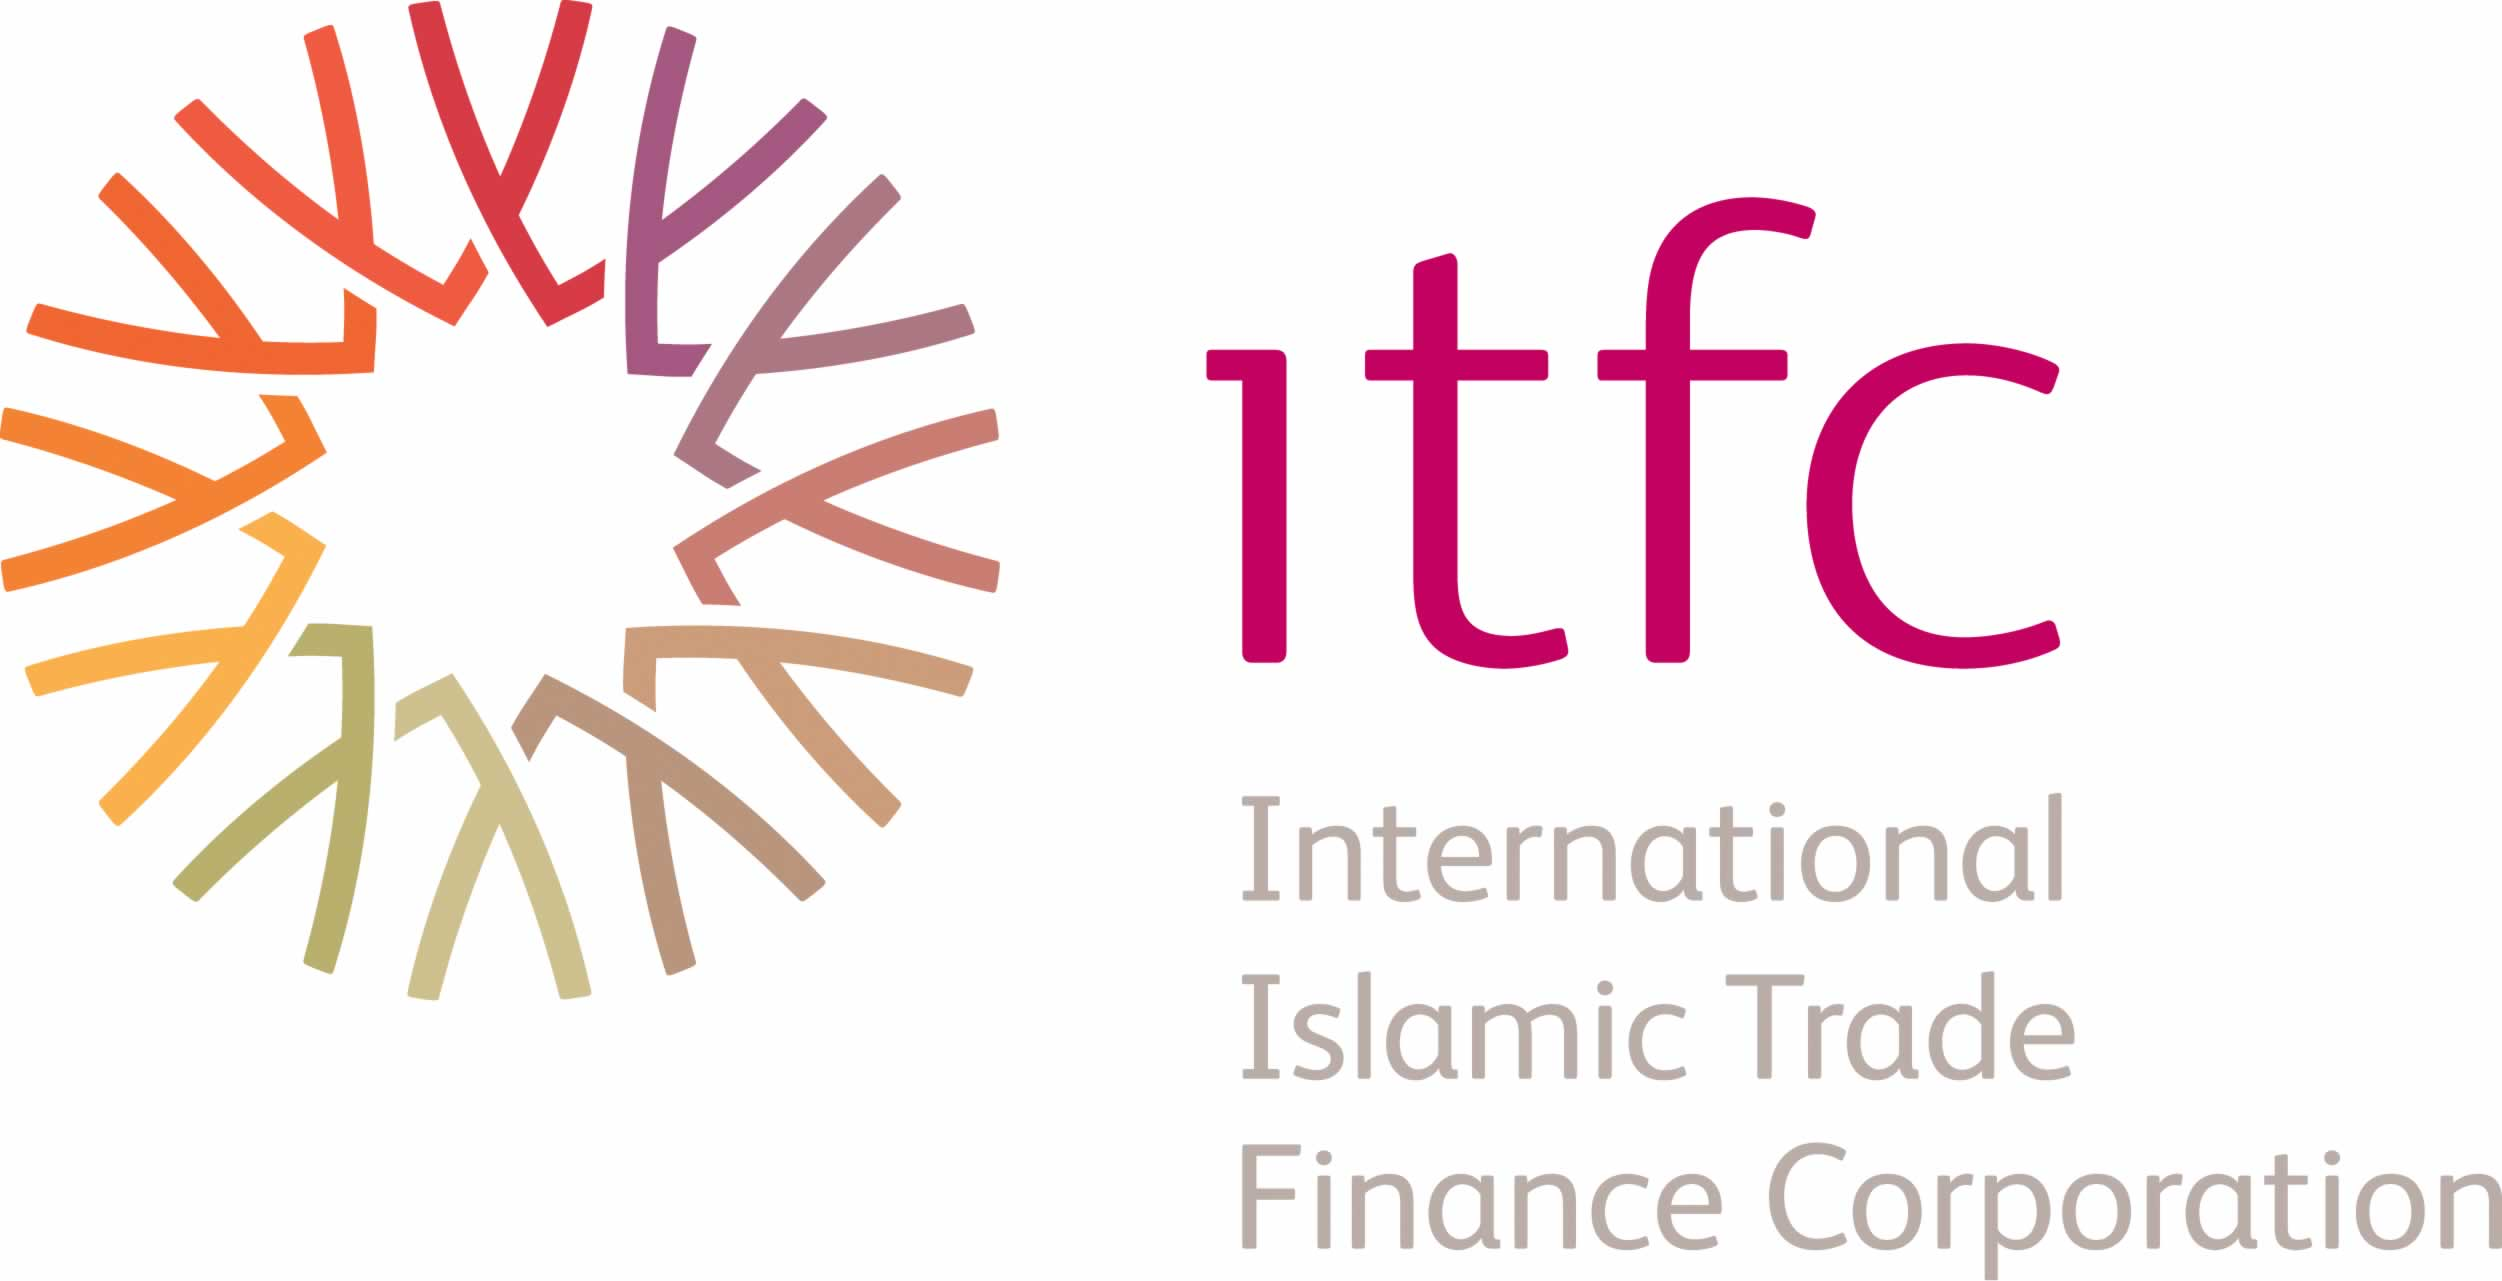 The International Islamic Trade Finance Corporation Executes its First Standalone LC Confirmation Transaction